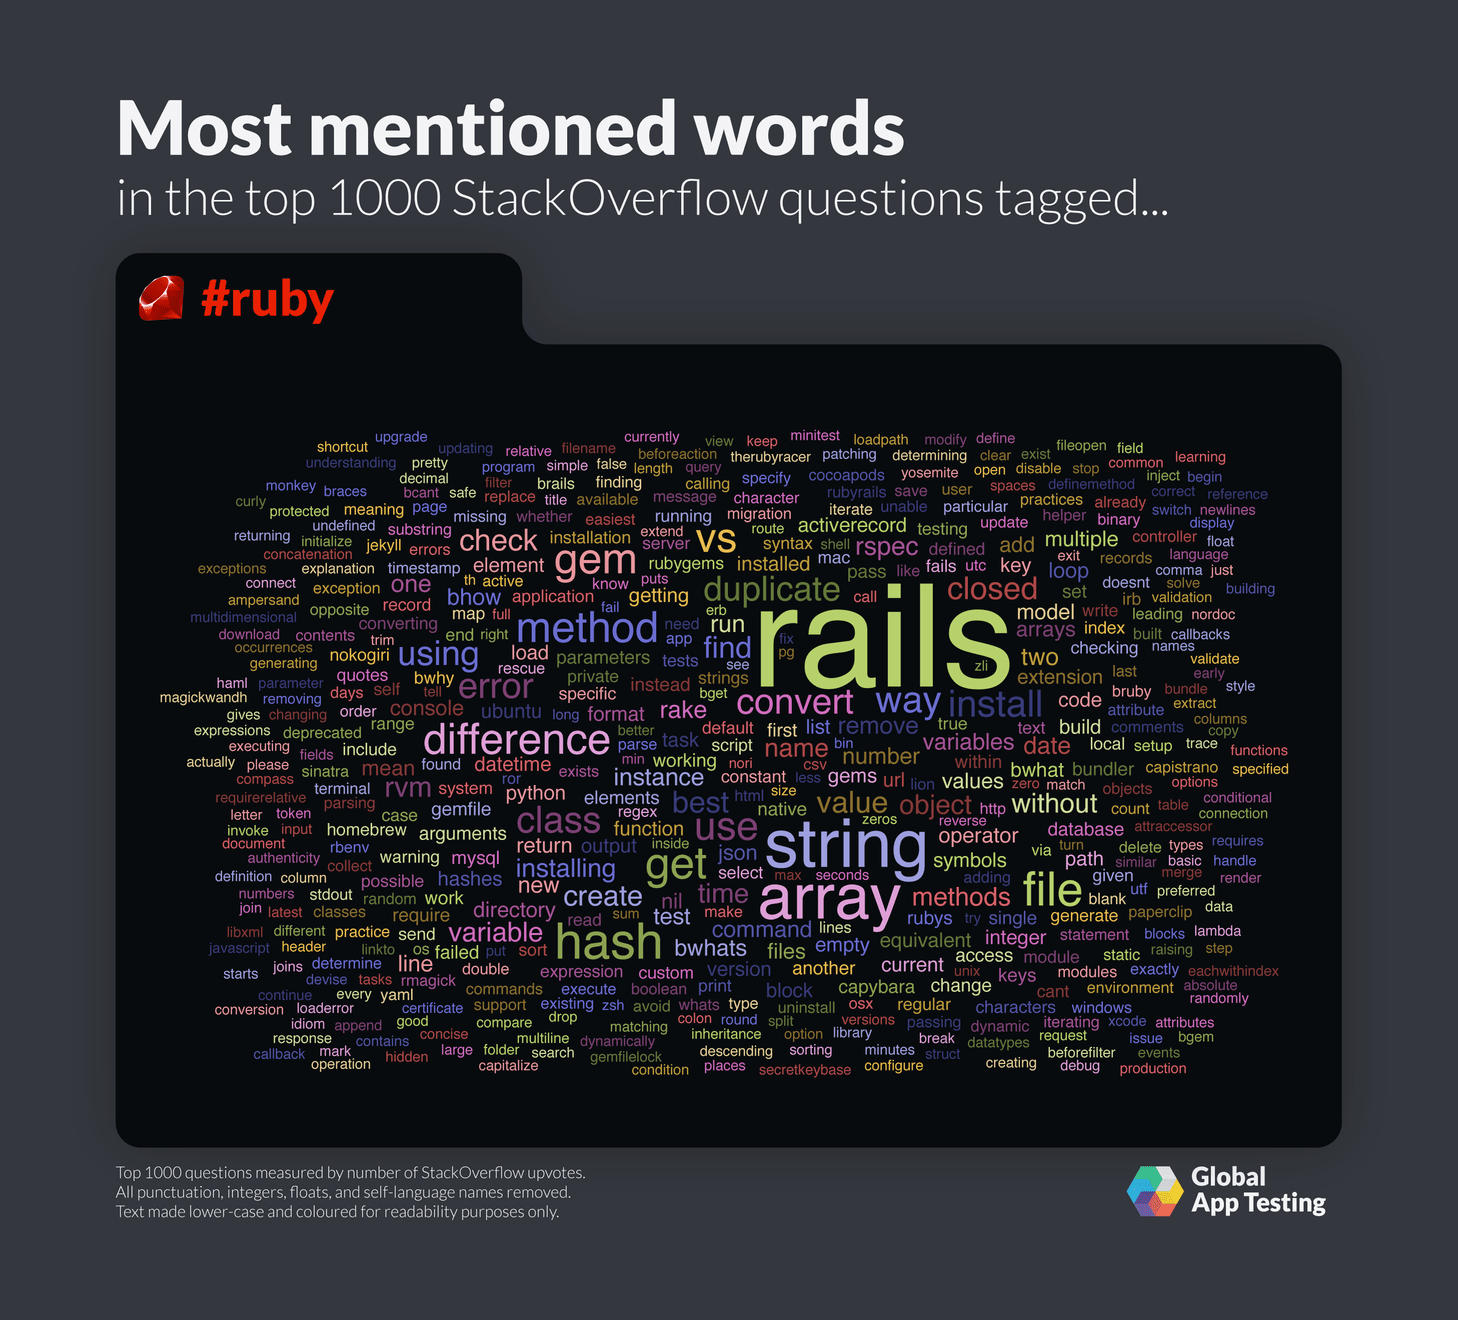 Most mentioned words for Ruby on StackOverflow.